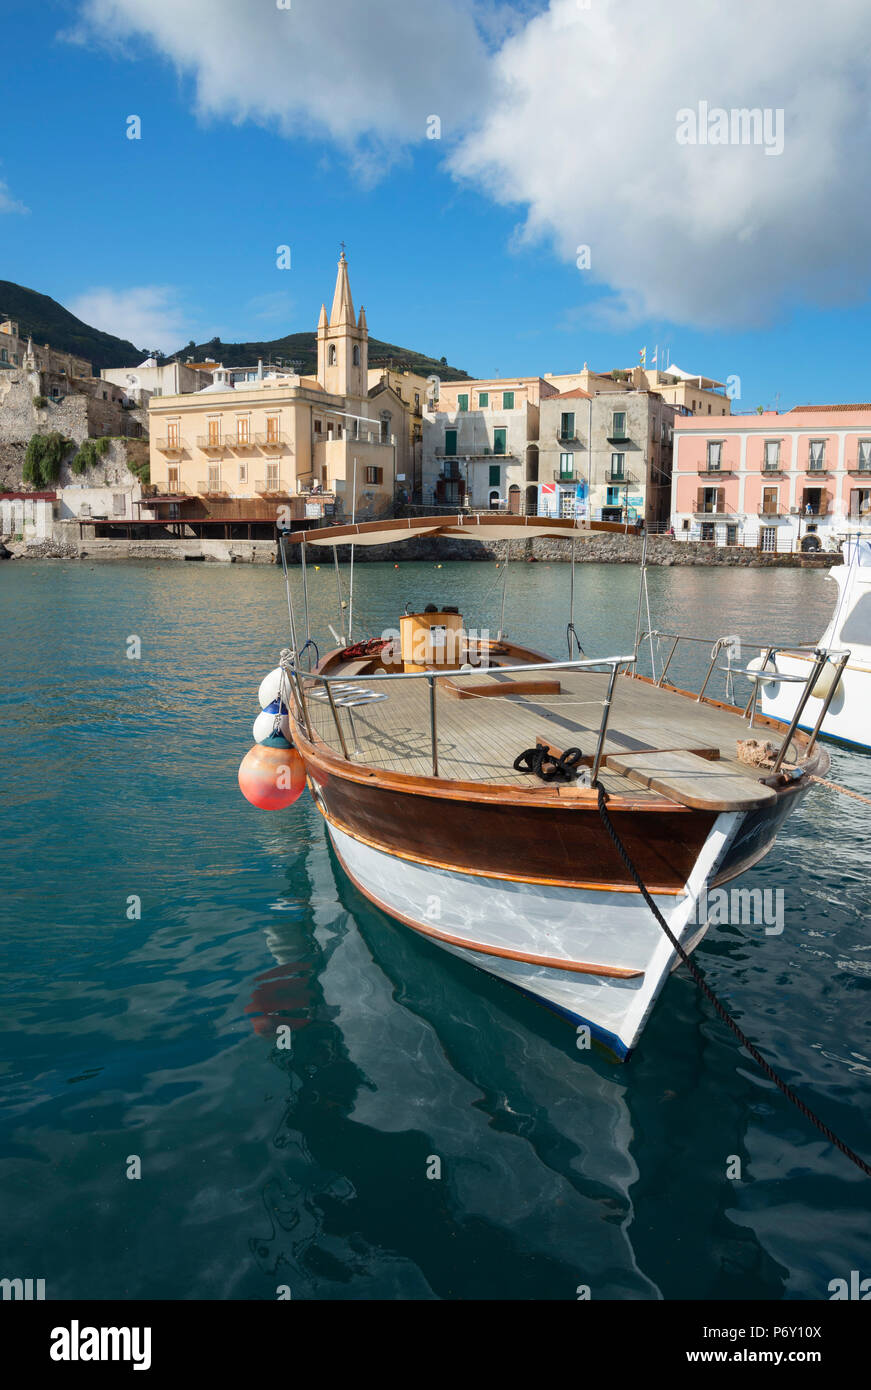 Marina Corta harbor and San Giuseppe church, Lipari Town, Lipari Island, Aeolian Islands, UNESCO World Heritage Site, Sicily, Italy, Mediterranean, Europe - Stock Image